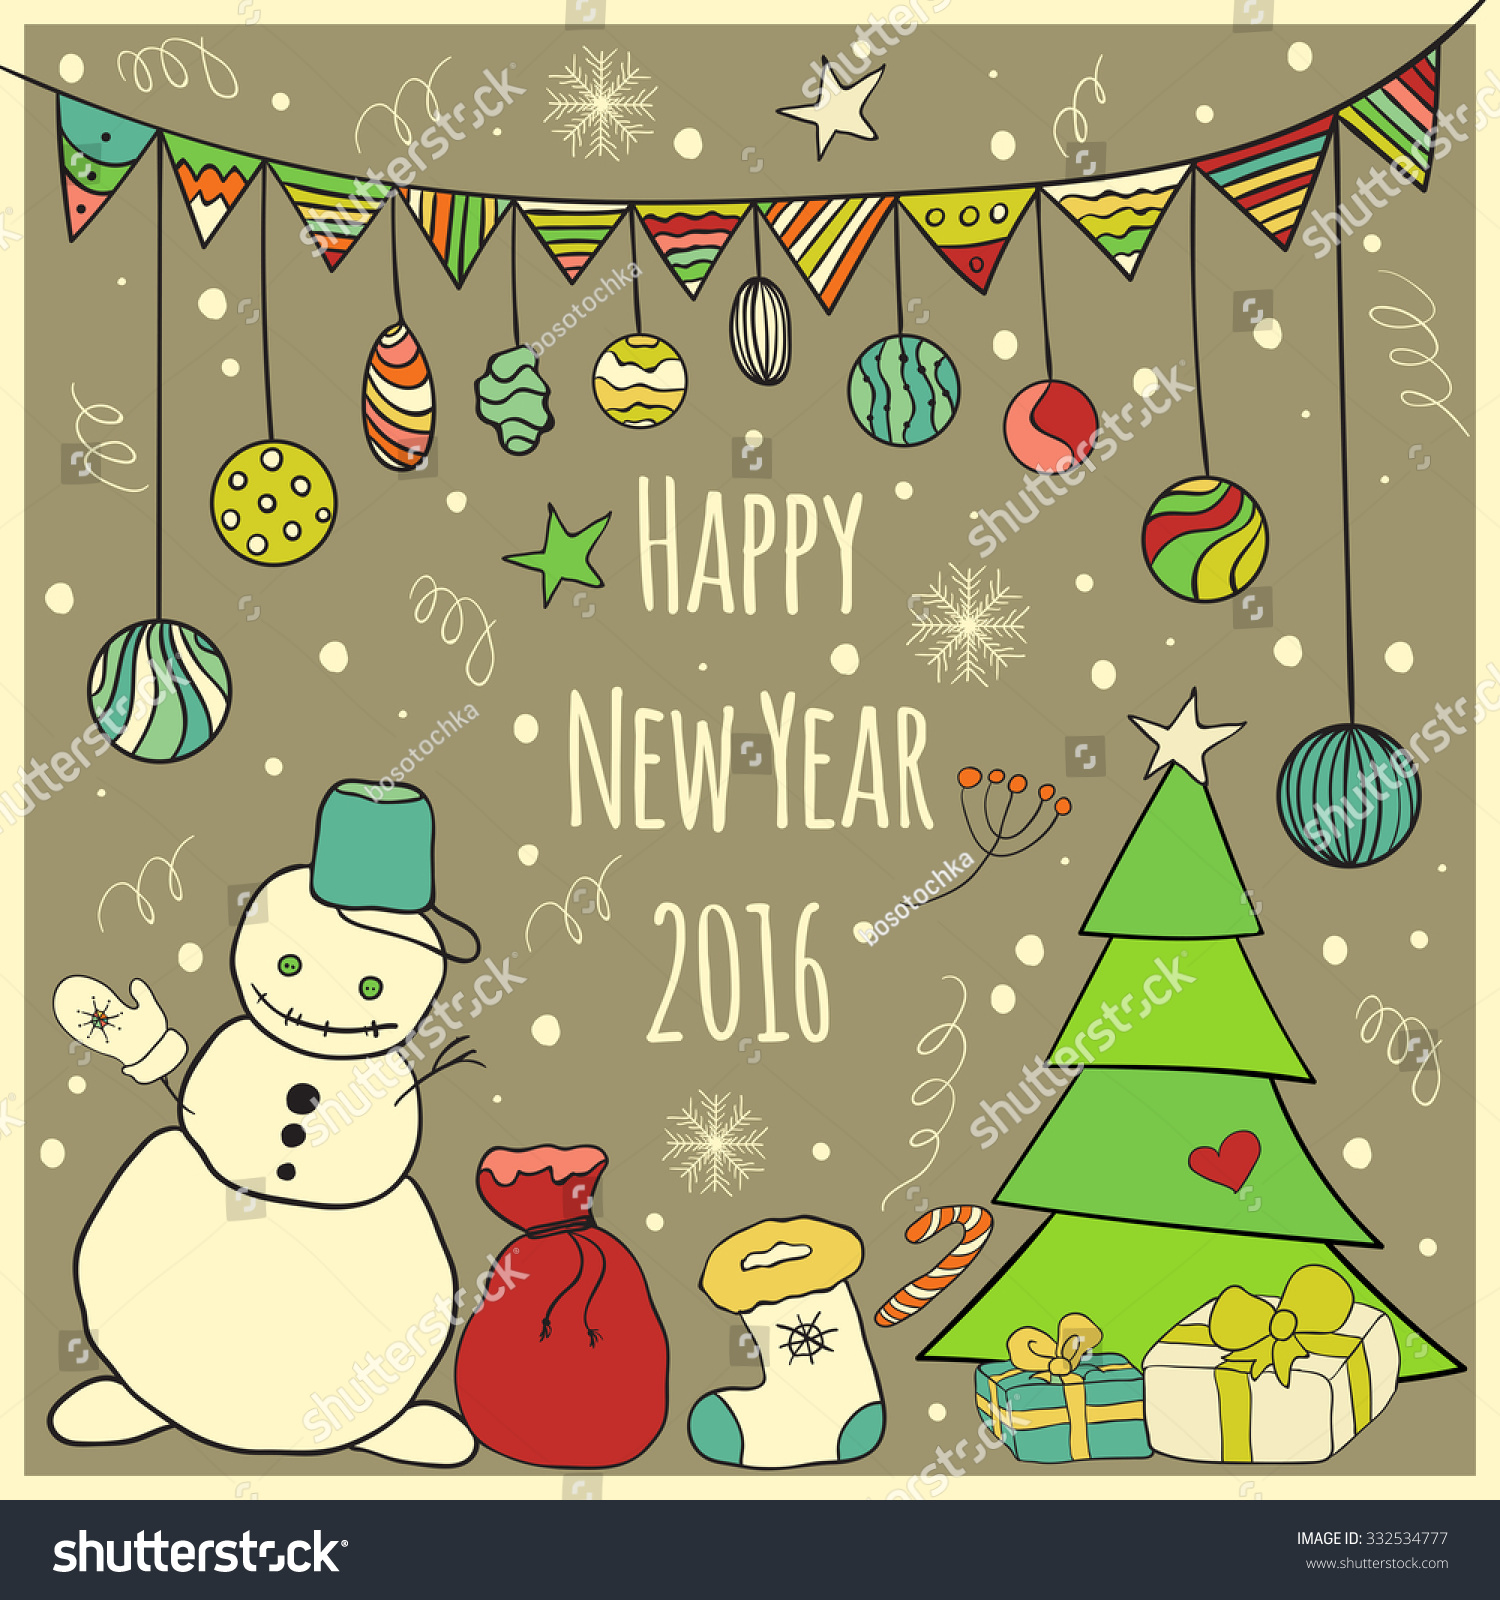 Happy New Year 2016 Greeting Card Stock Vector Royalty Free